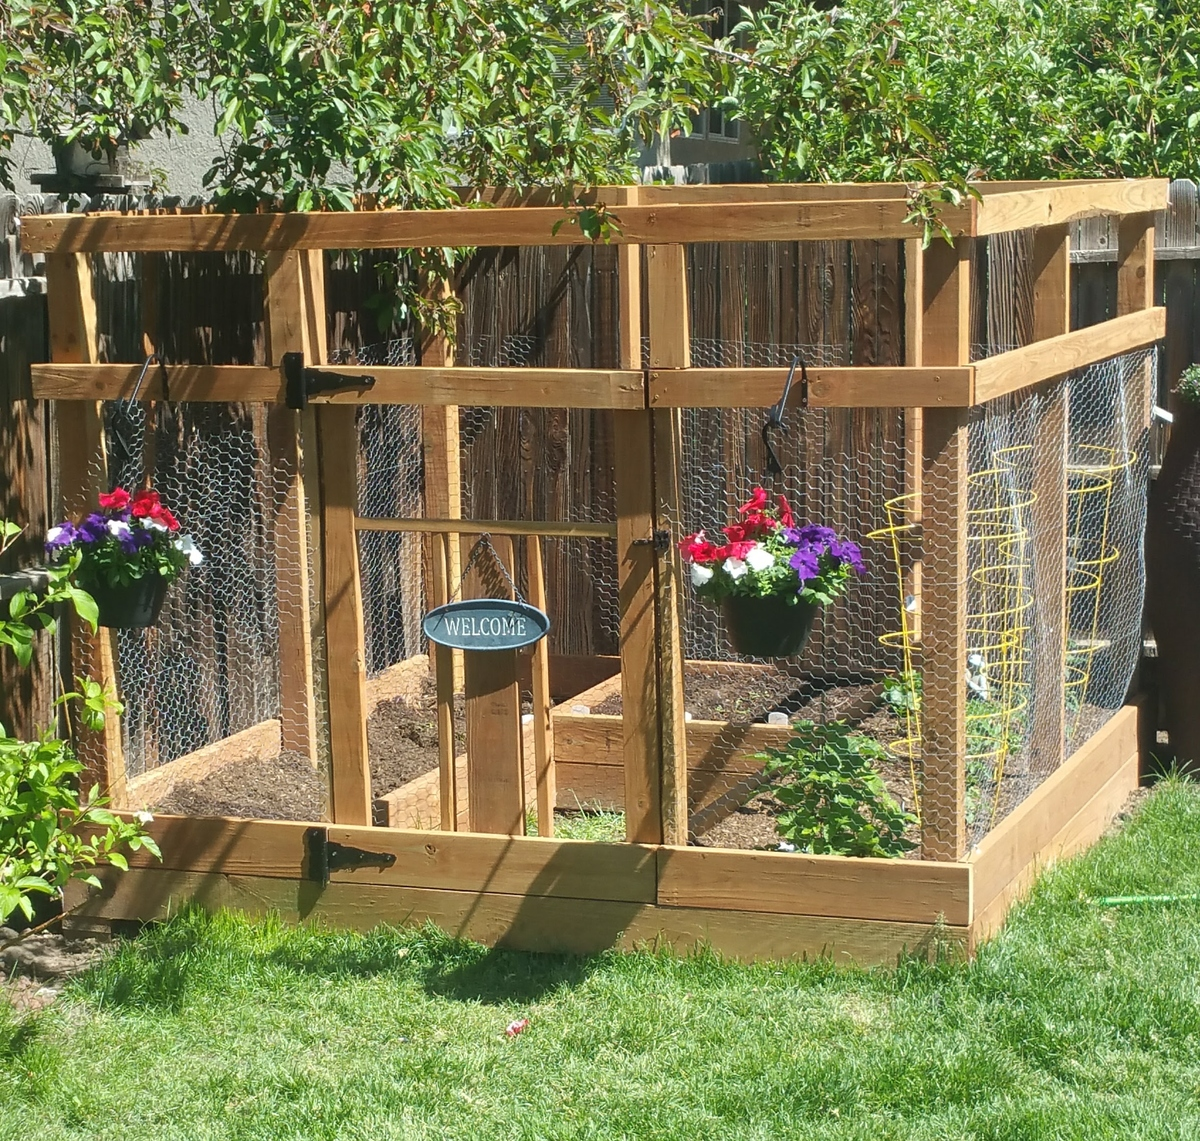 Boxed Vegetable Garden Ideas